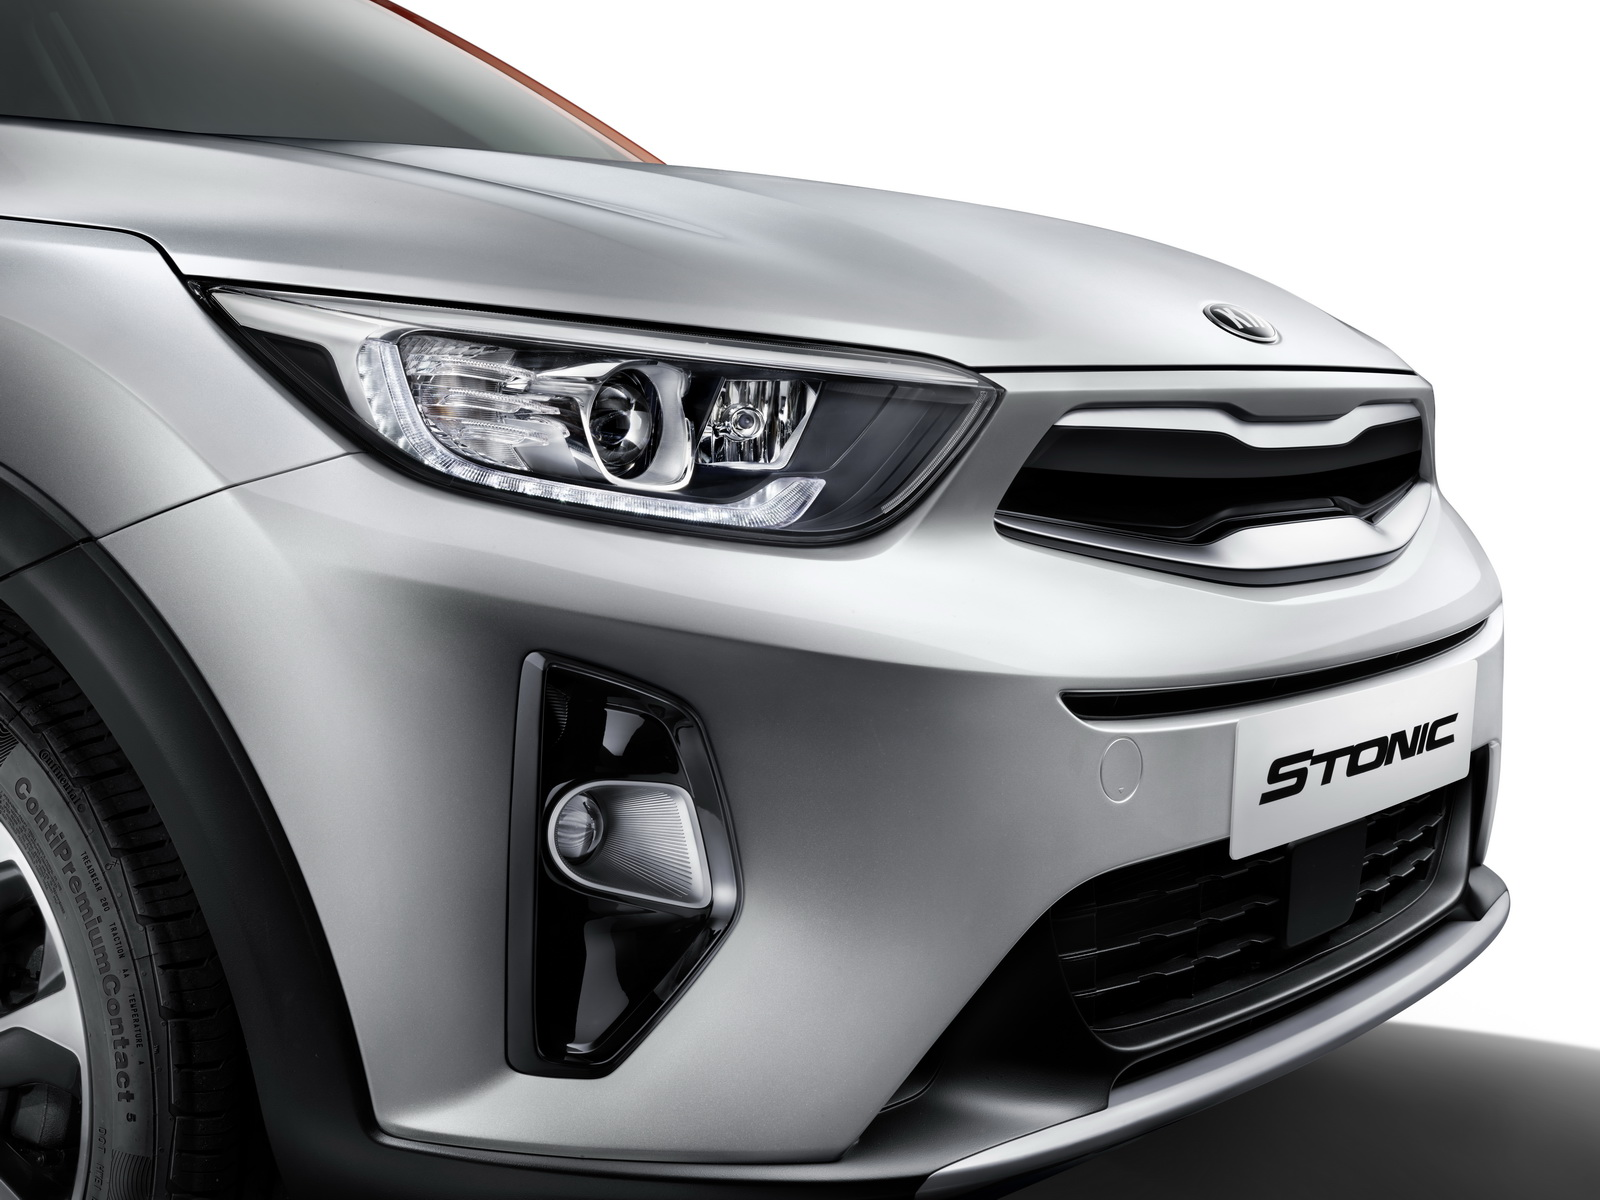 new kia stonic sub compact suv officially unveiled carscoops. Black Bedroom Furniture Sets. Home Design Ideas